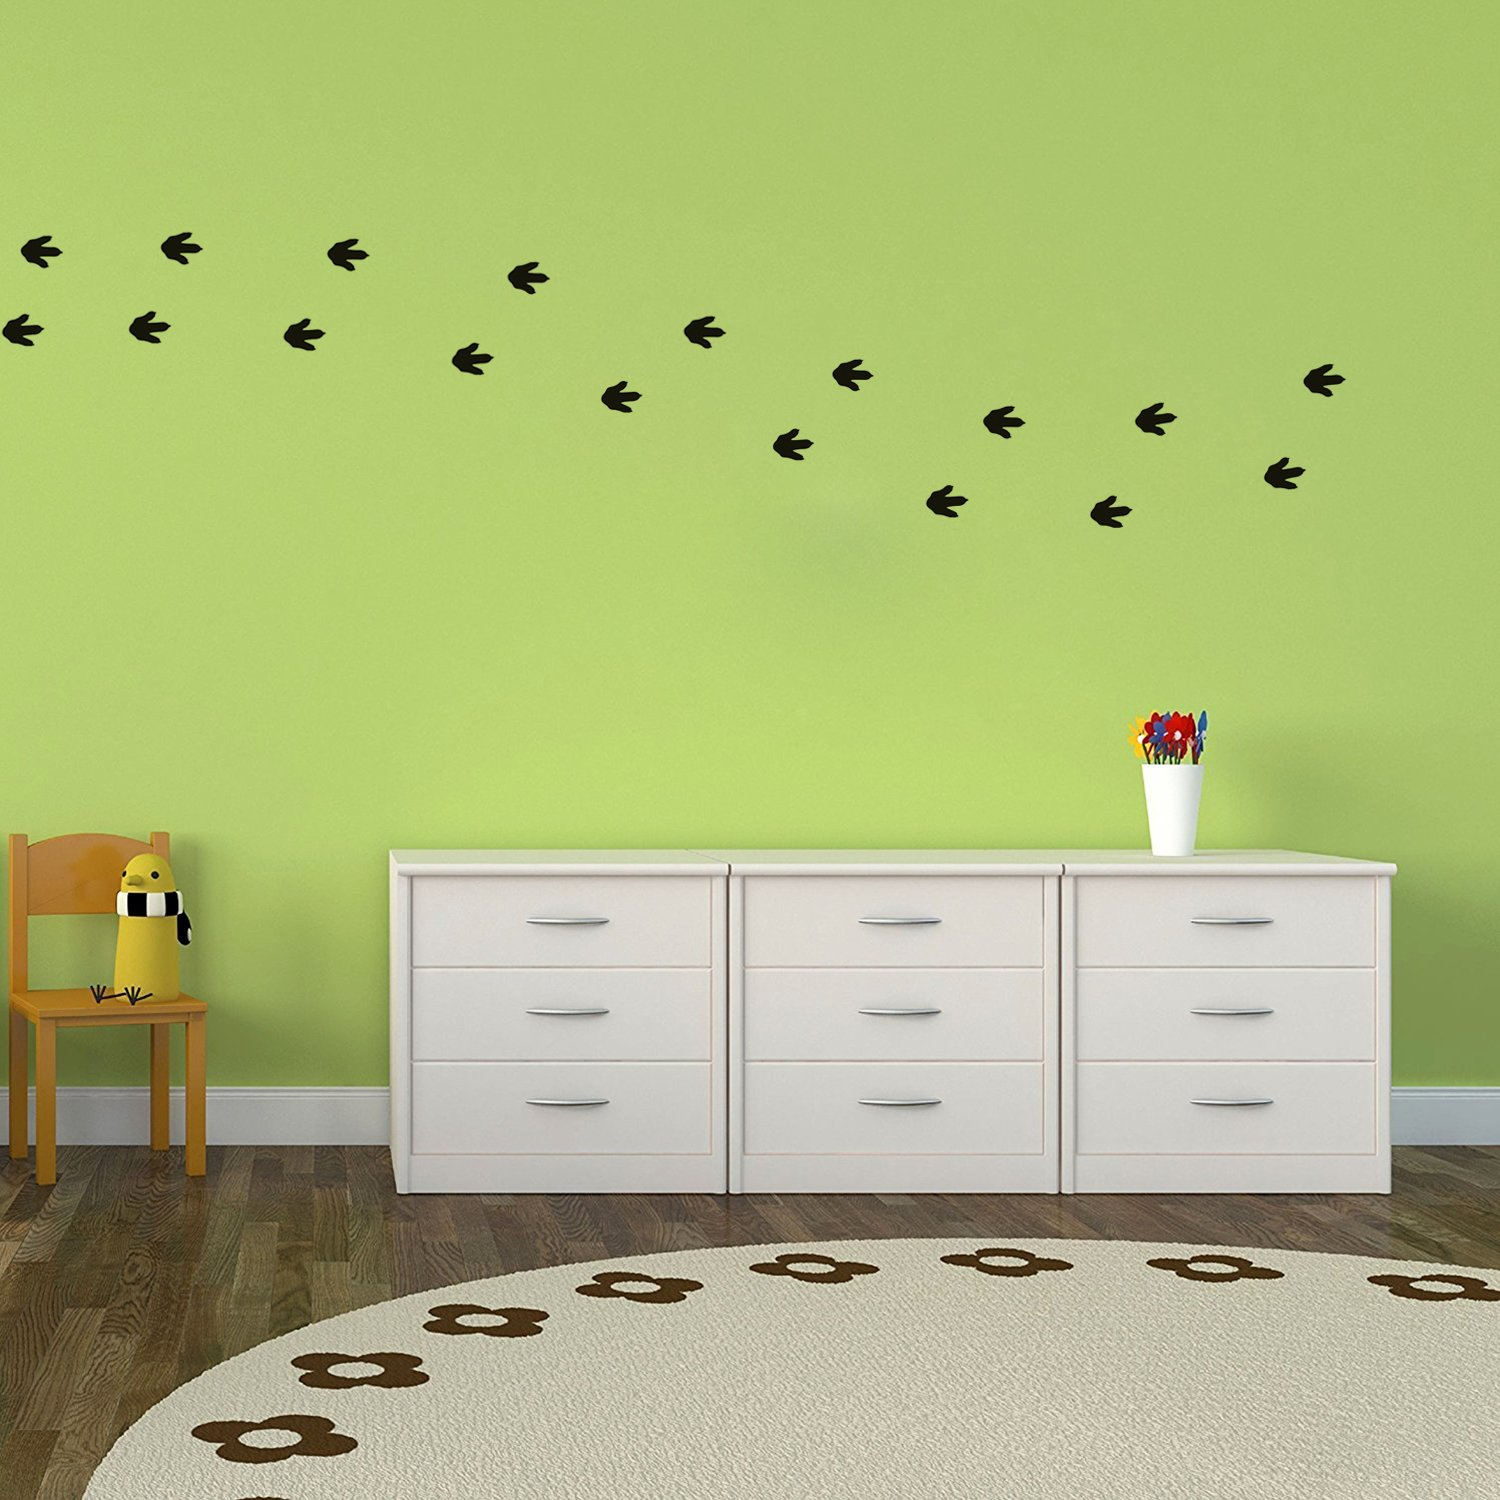 DIY Cat Dogs Footprint Wall Sticker for Kids Room Decoration Pet Paw Wall Decal 40pcs Paw Decals Animal Theme Party Sticker